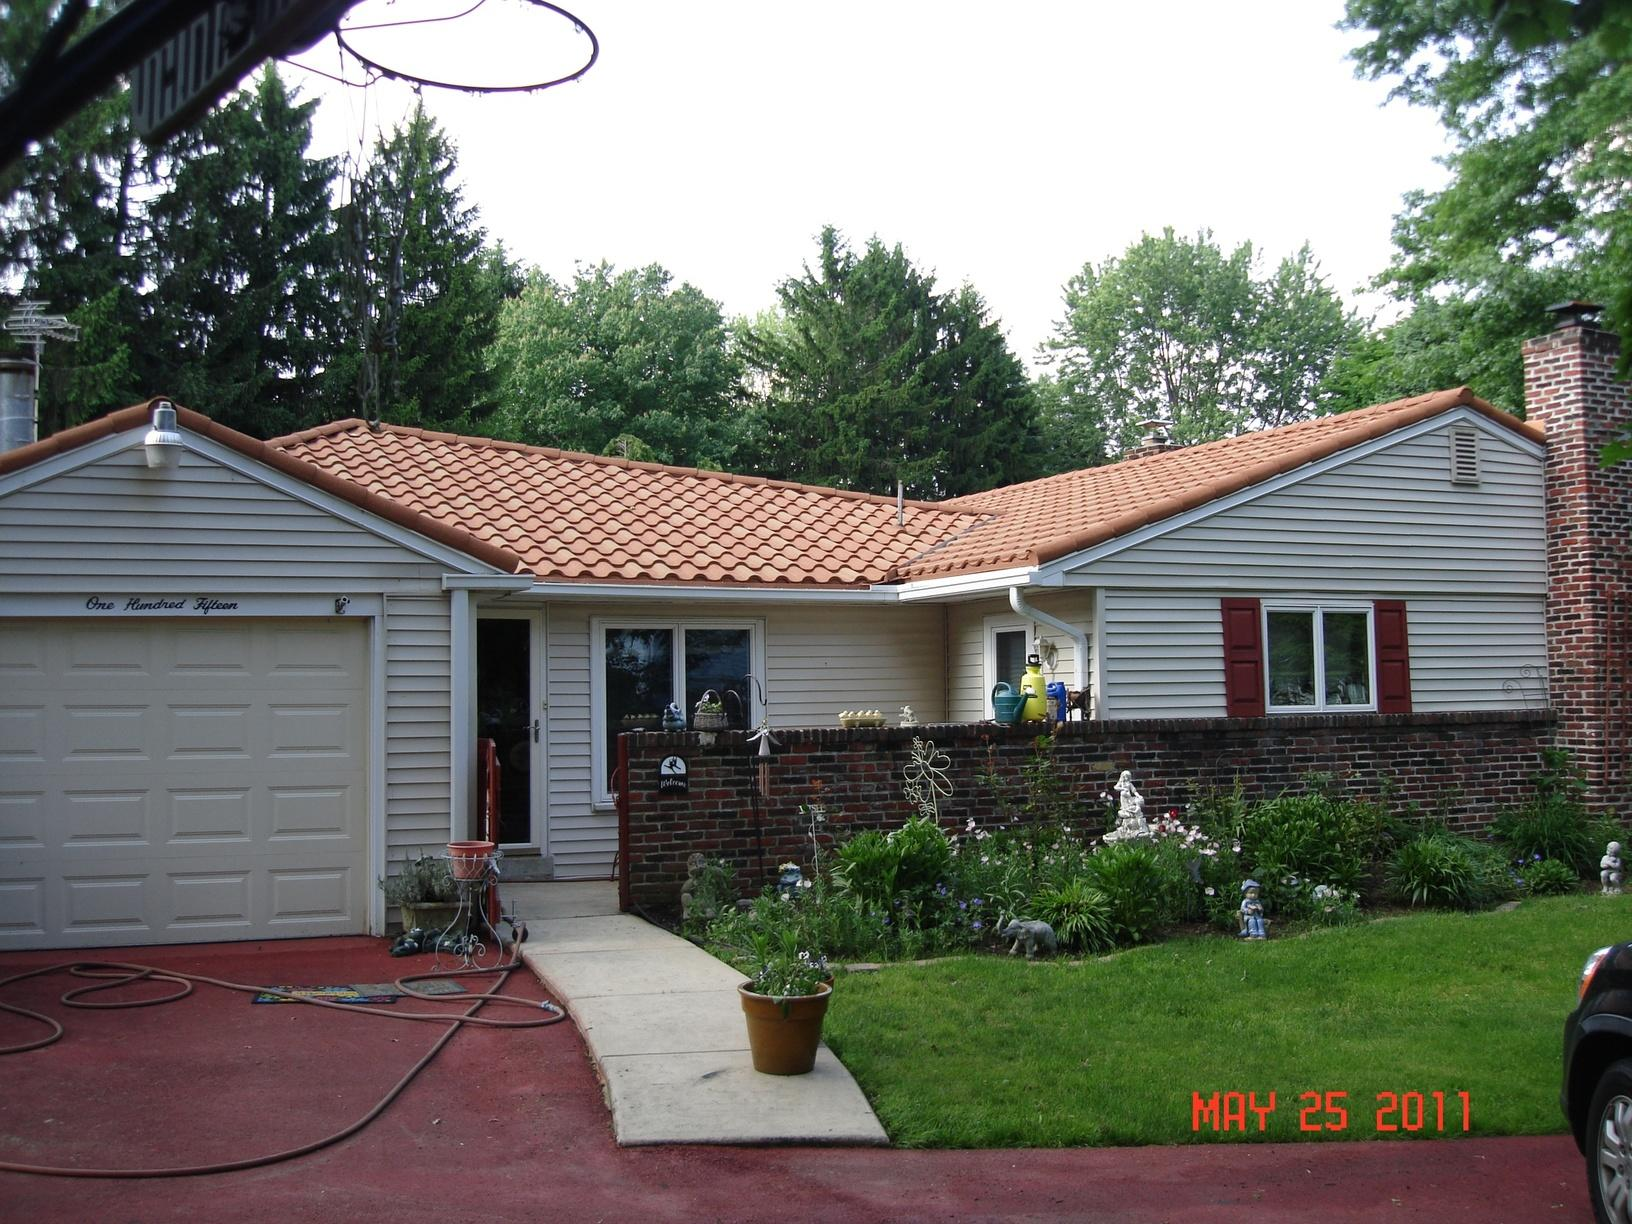 East Norriton, PA Metal Tile Roof Relacement